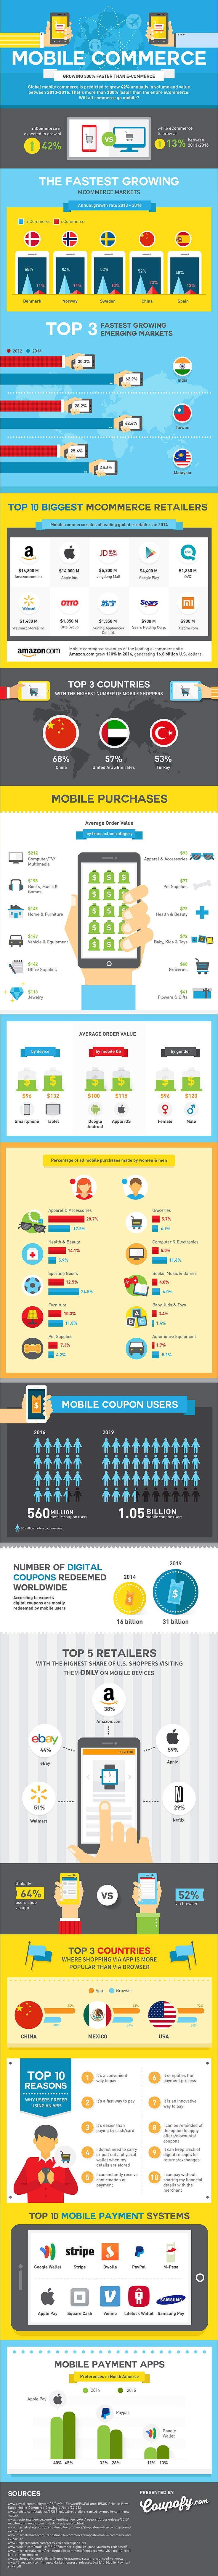 Mobile commerce is defined as the sale of goods through mobile devices. With the rise of apps for online stores, and mobile specific payment processors, mCommerce is projected to grow 300% faster than traditional online shopping by 2016